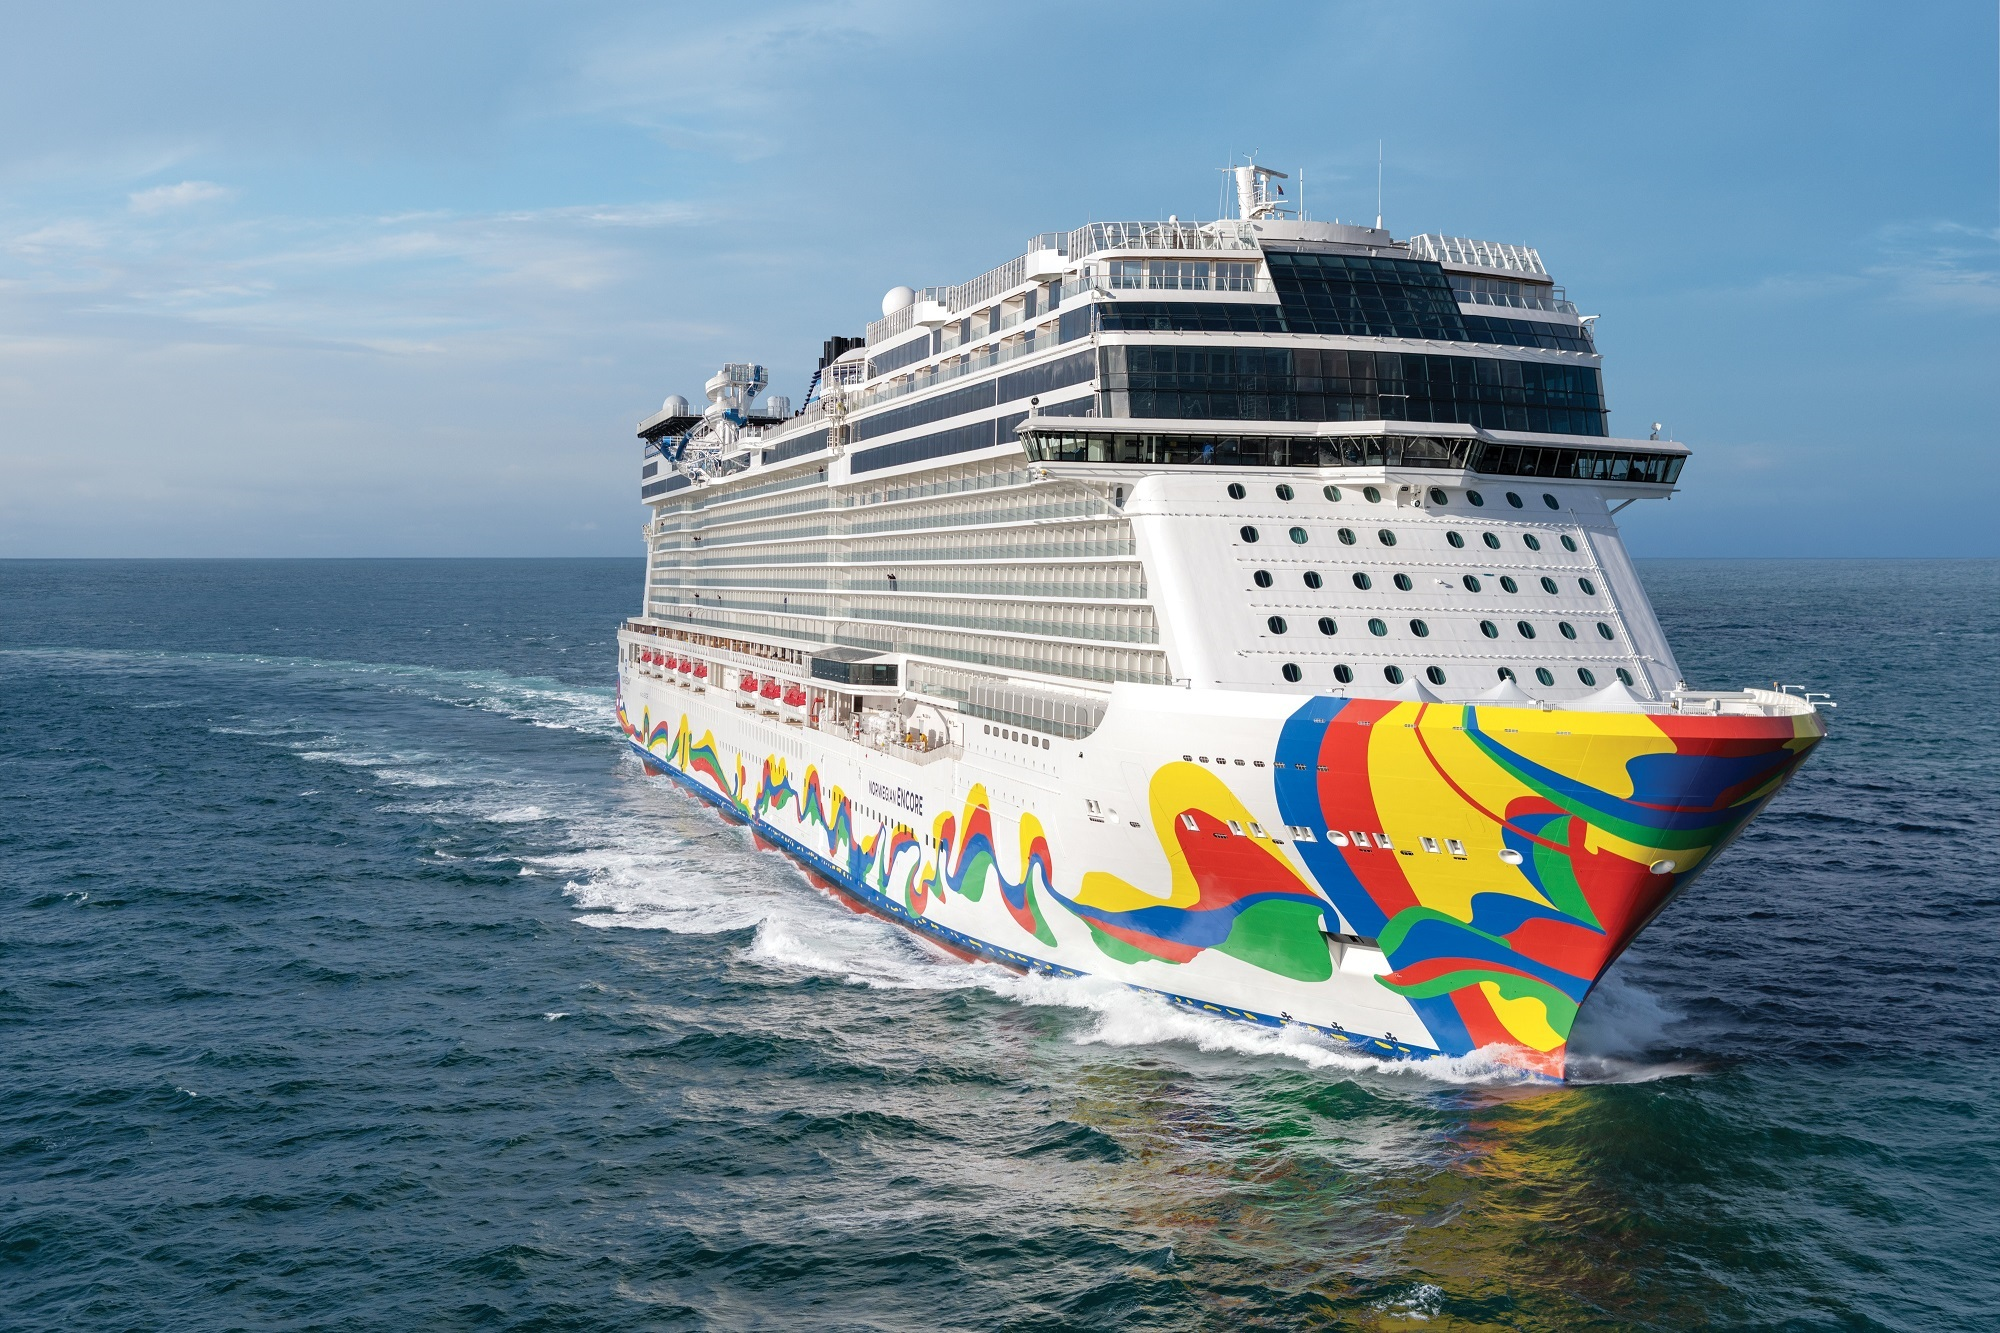 Excited to Sail on Norwegian Encore